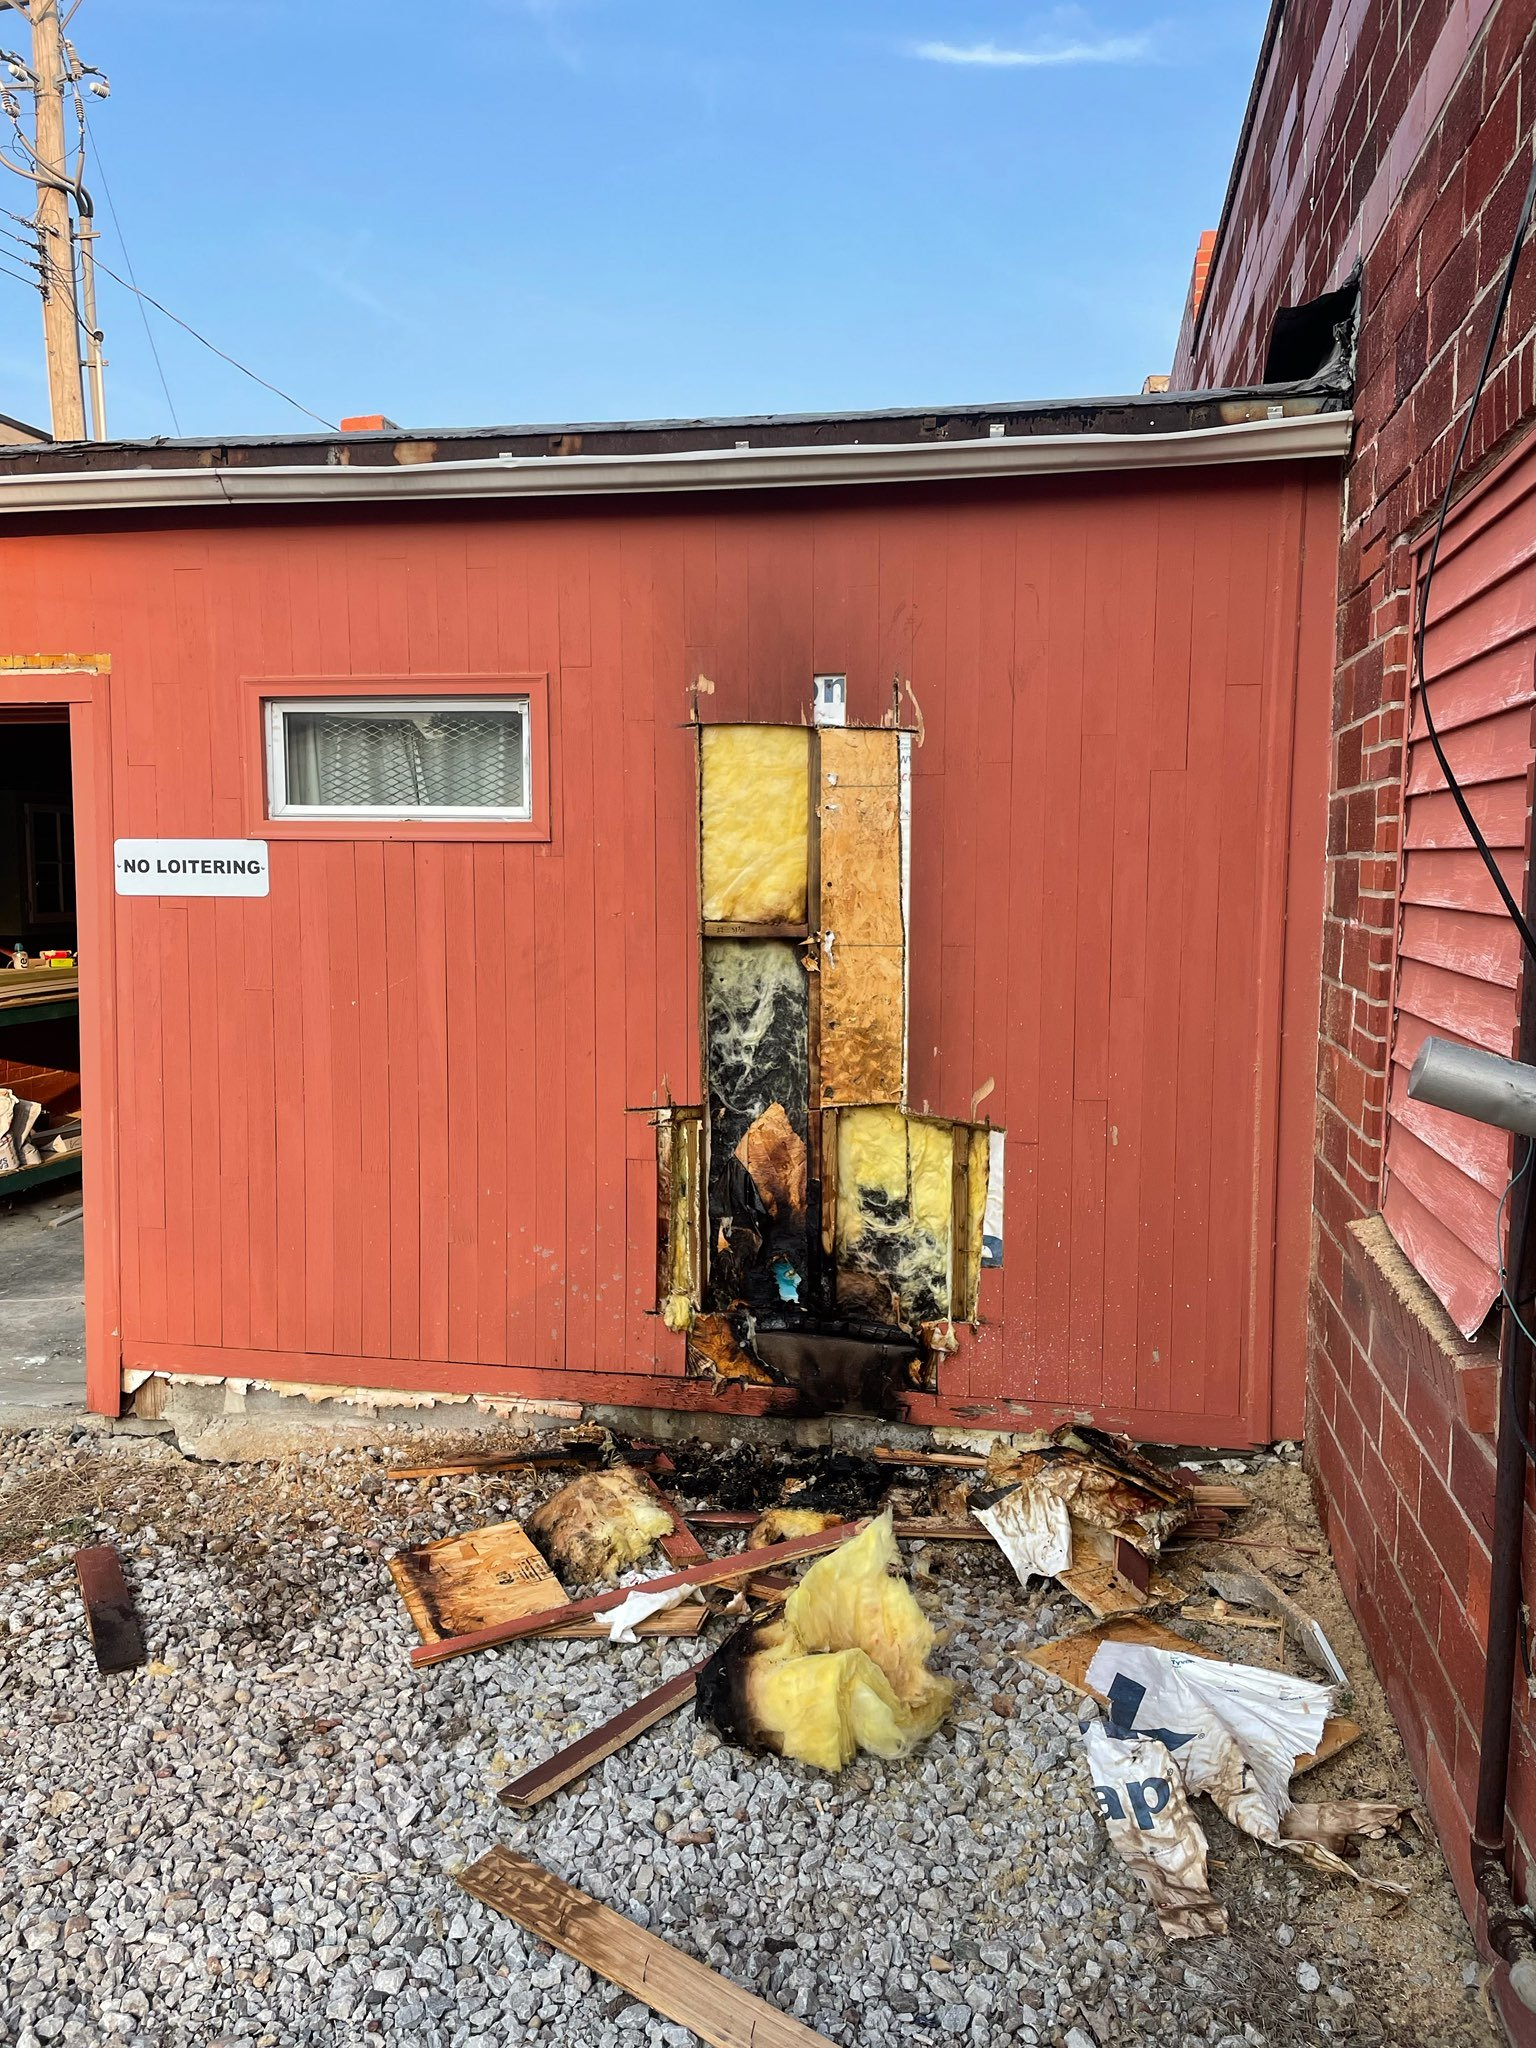 Suspected arson causes $2K in damage at tattoo parlor